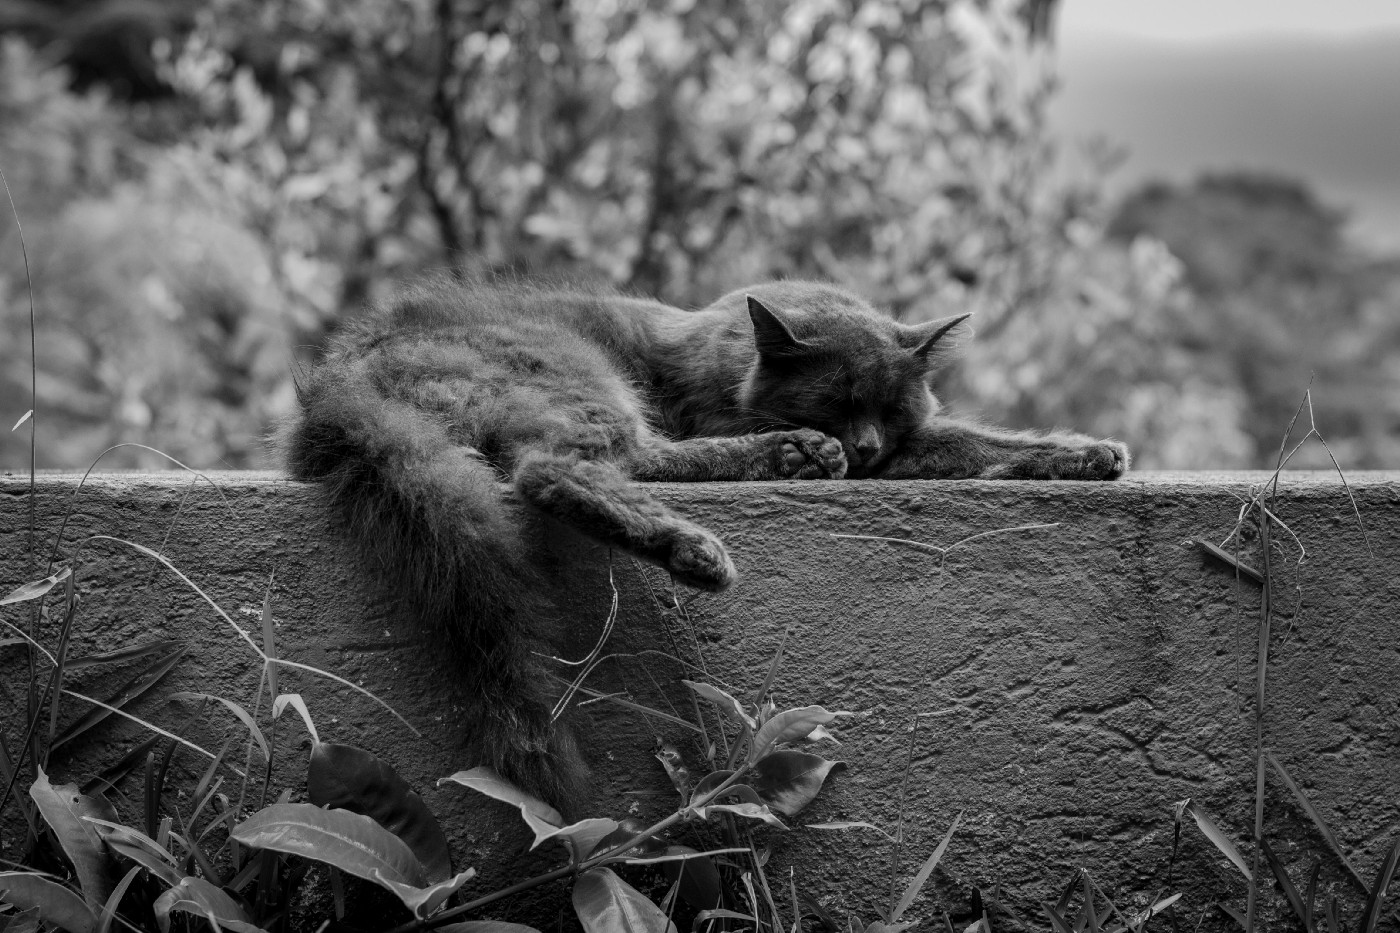 Black and white photo of a cat resting on a ledge.